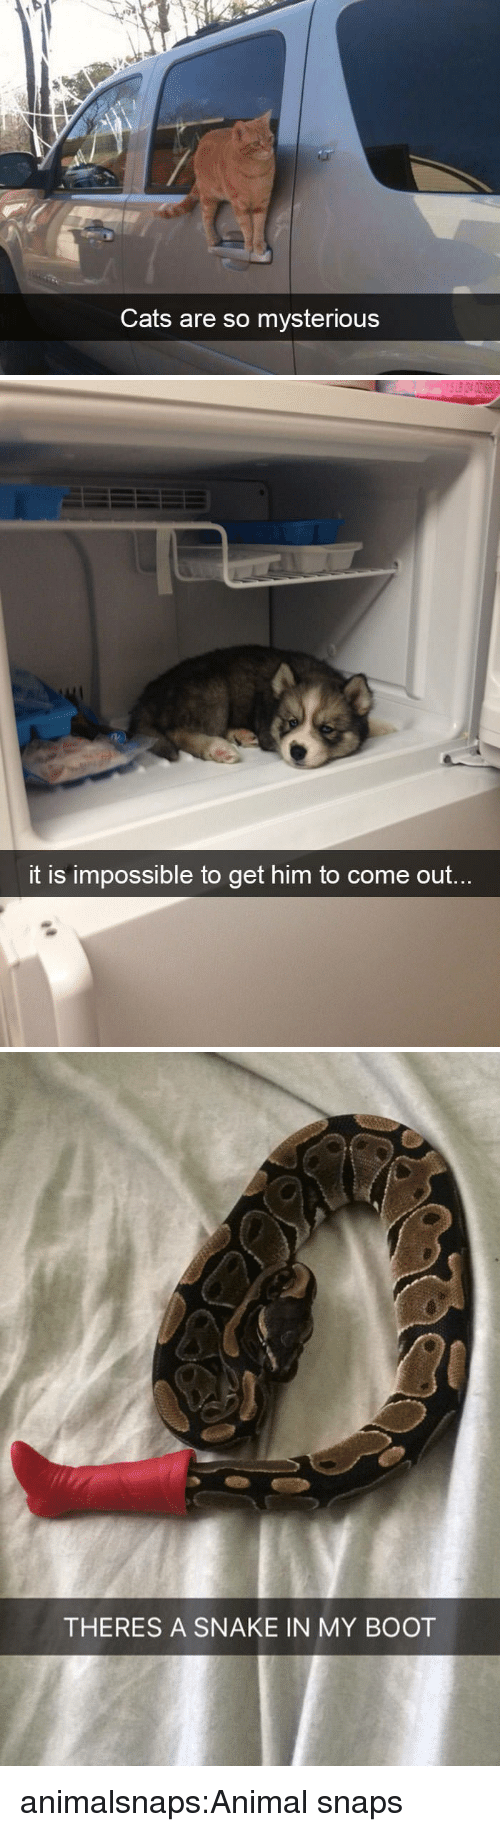 Cats, Target, and Tumblr: Cats are so mysterious   it is impossible to get him to come  out.   THERES A SNAKE IN MY BOOT animalsnaps:Animal snaps